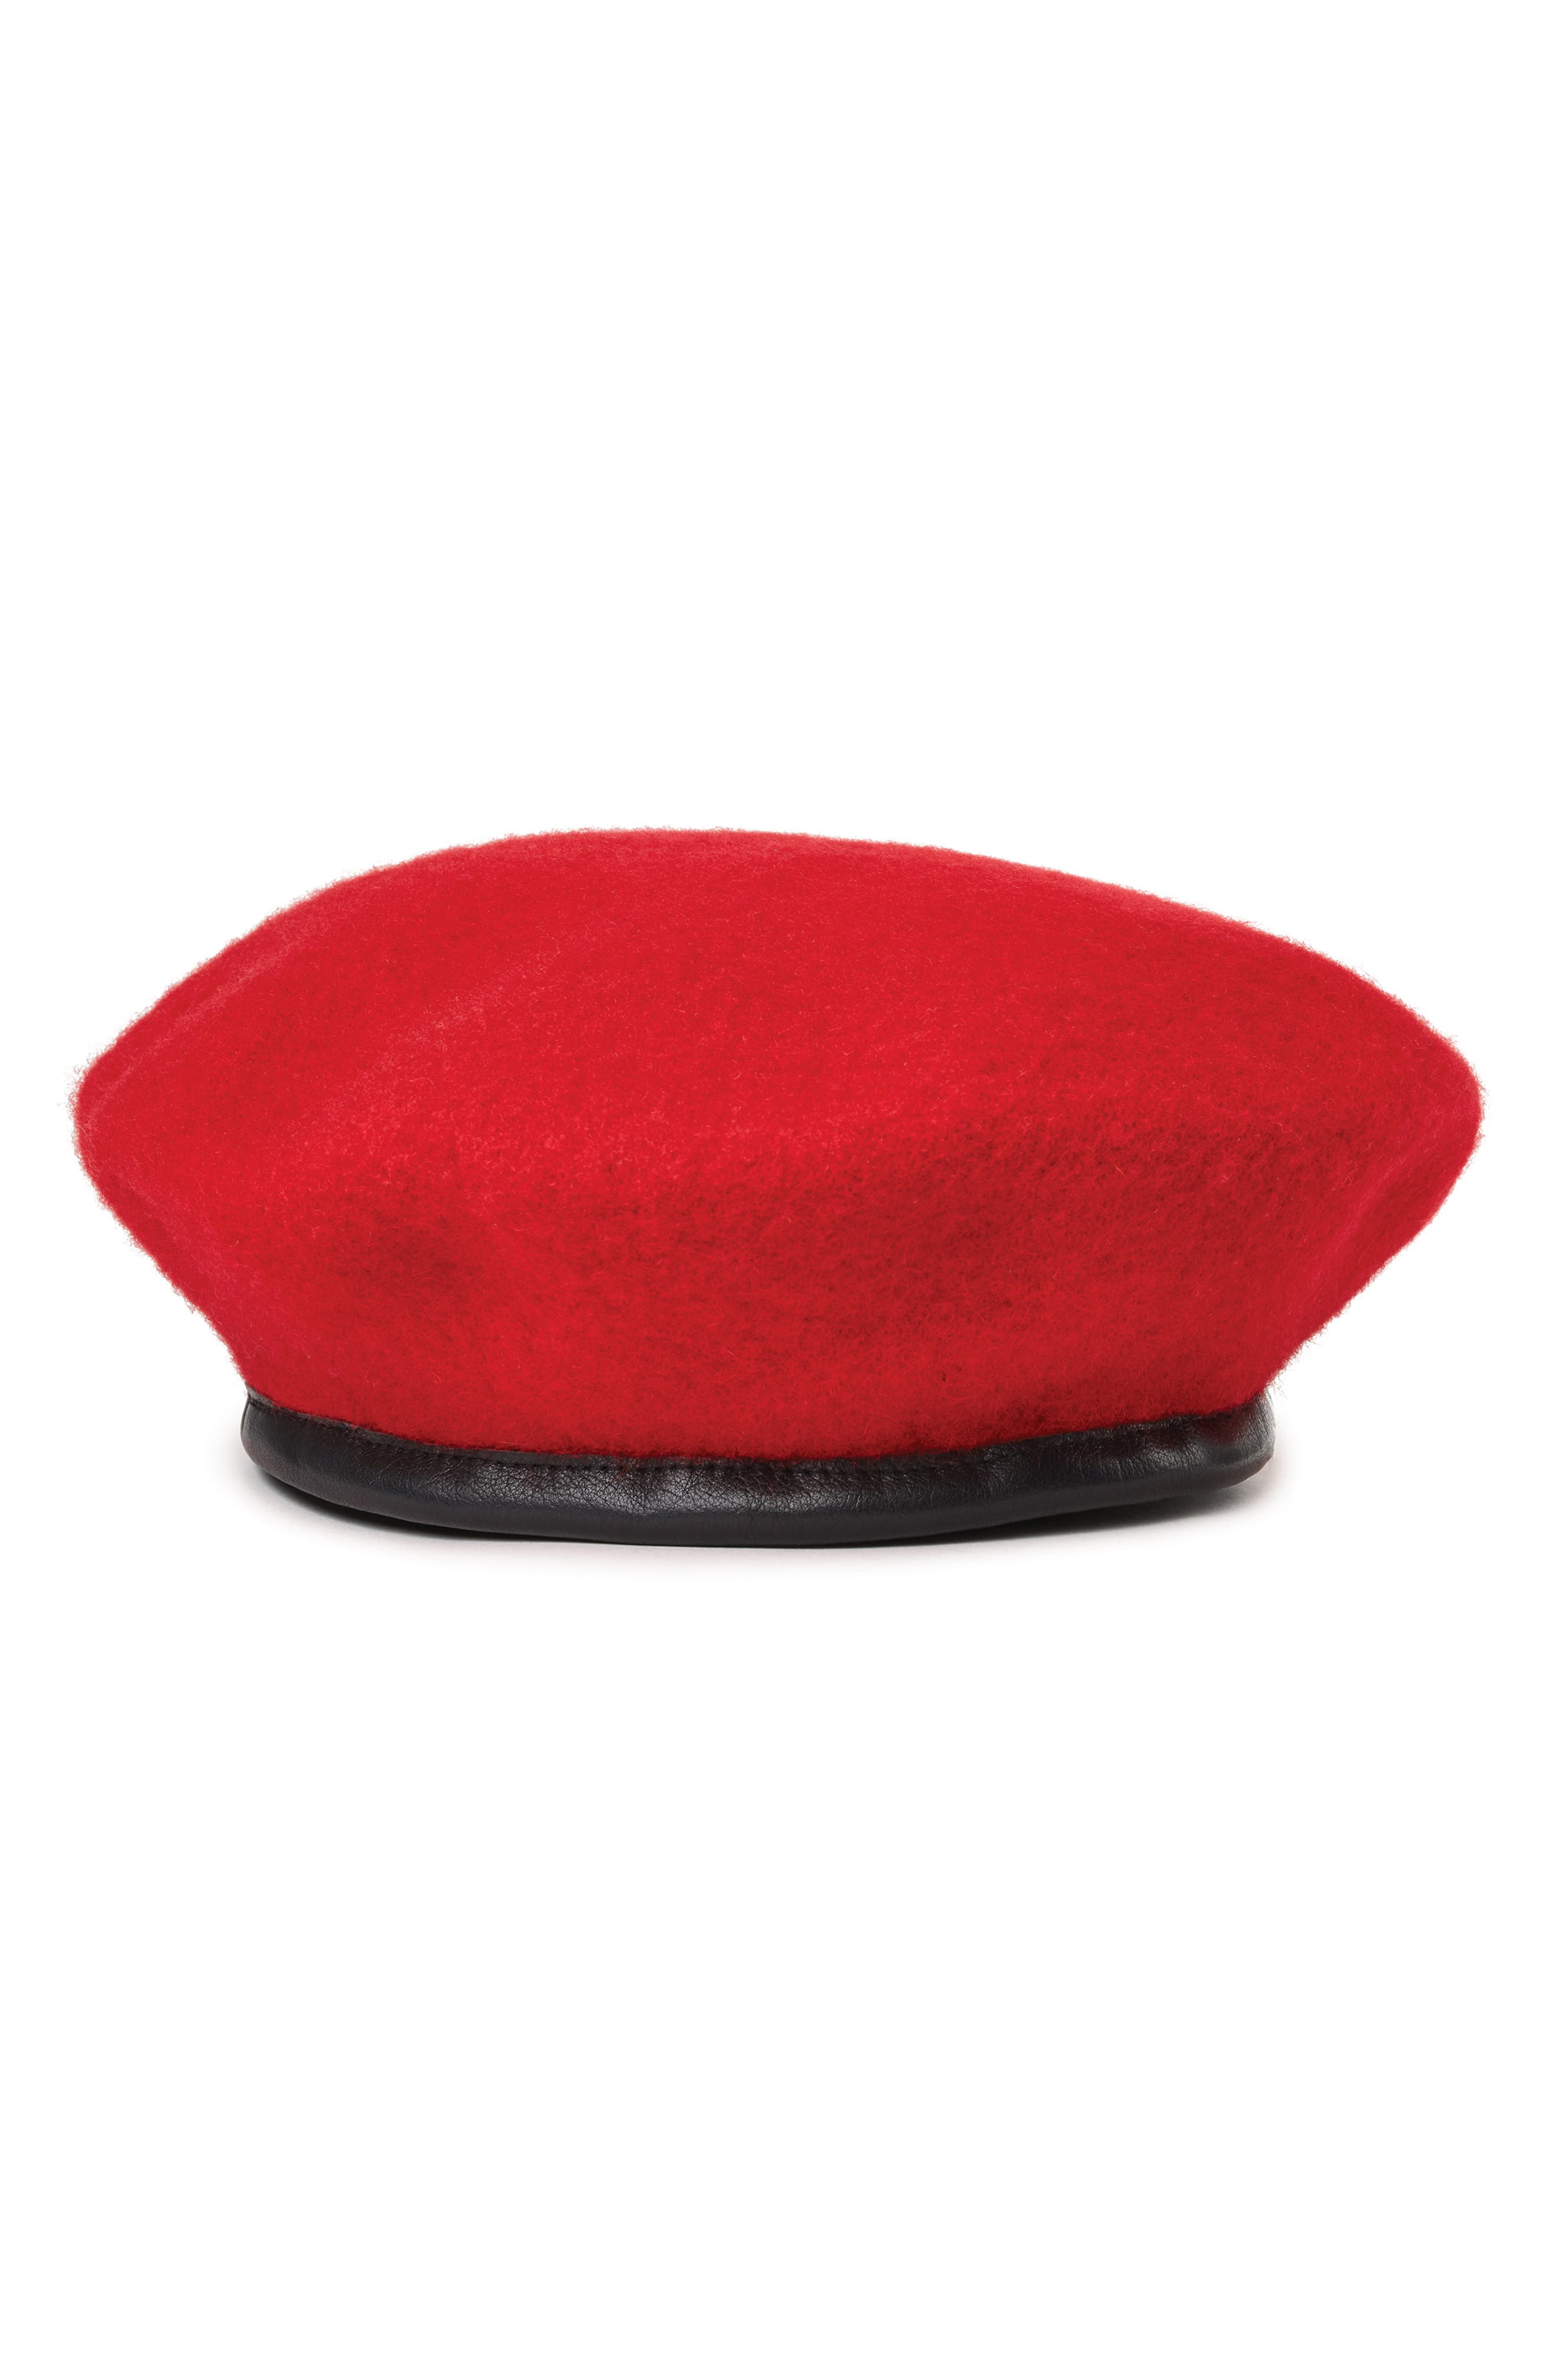 a1a7db28125ae Beret Hats for Women